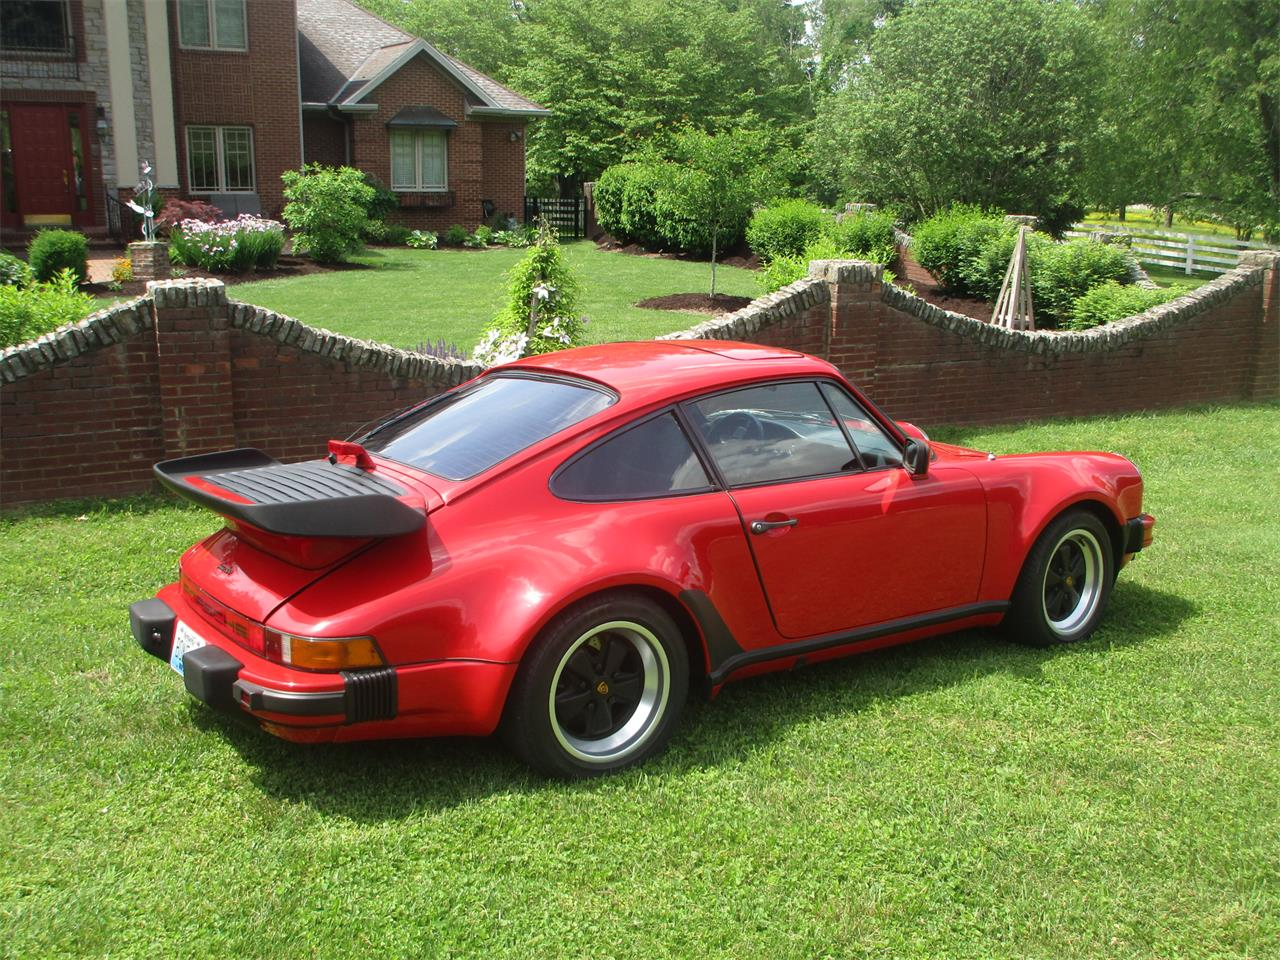 Large Picture of 1979 Porsche 930 Turbo located in Kentucky - $79,995.00 Offered by a Private Seller - Q2ZE